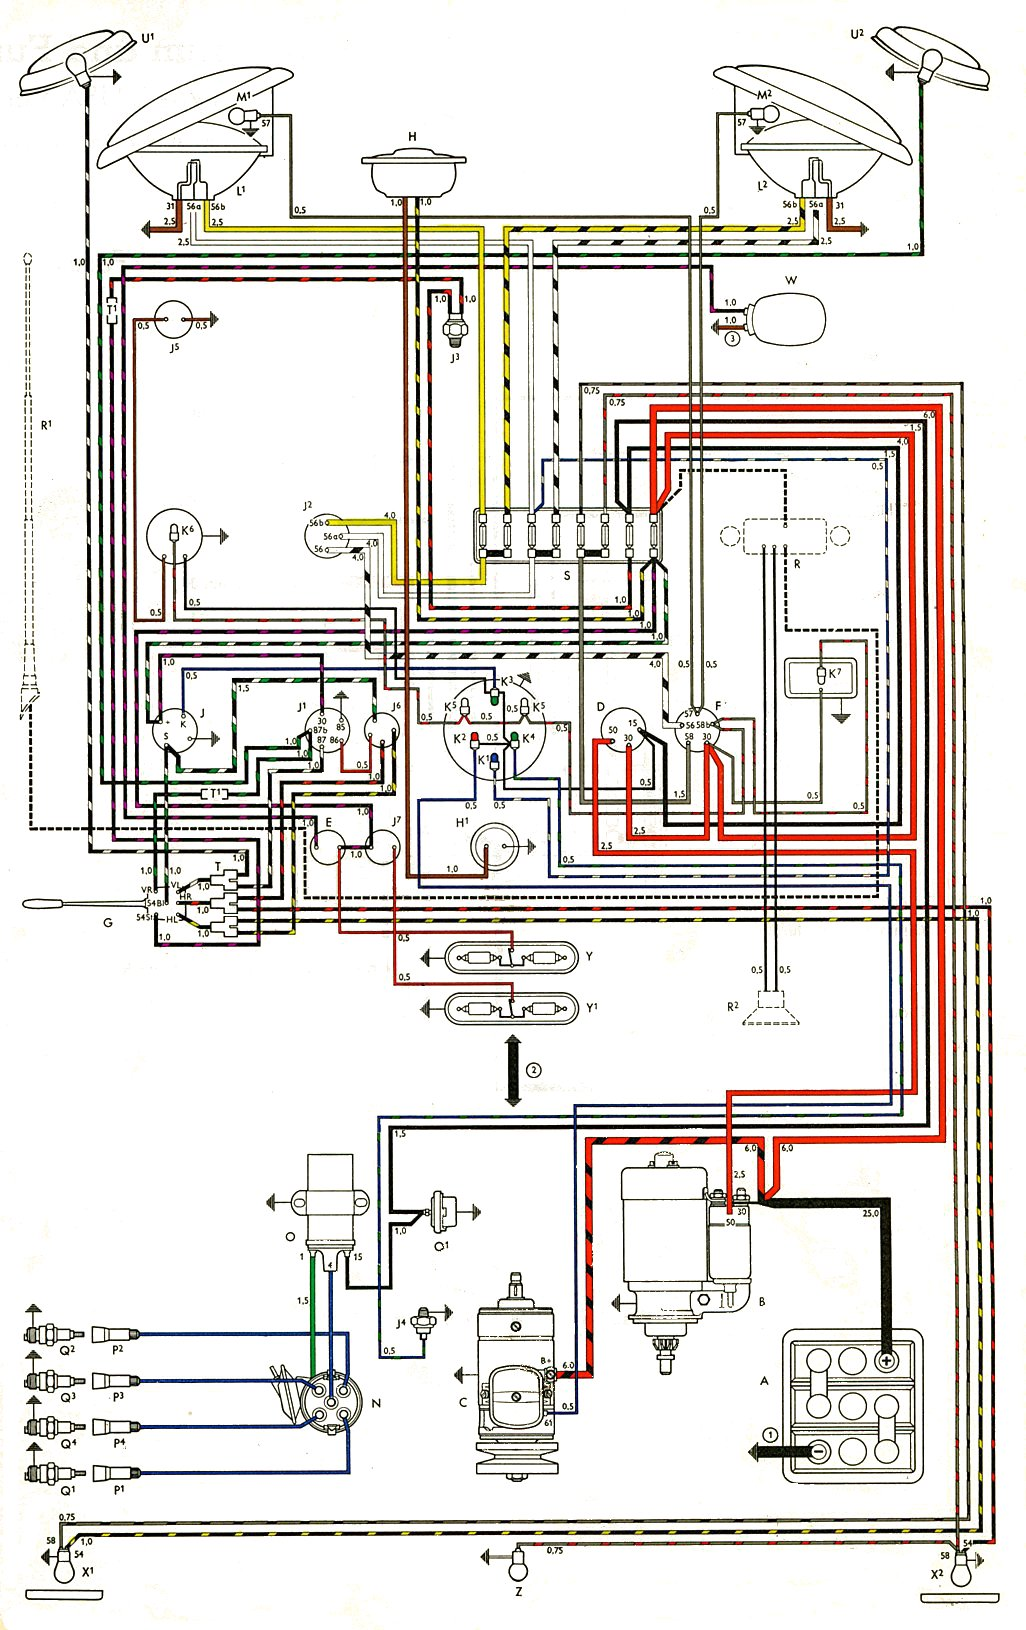 Wiring Diagram For Besides 1968 Vw Beetle Moreover Diagrams 2000 Bettle Thesamba Com Type 2